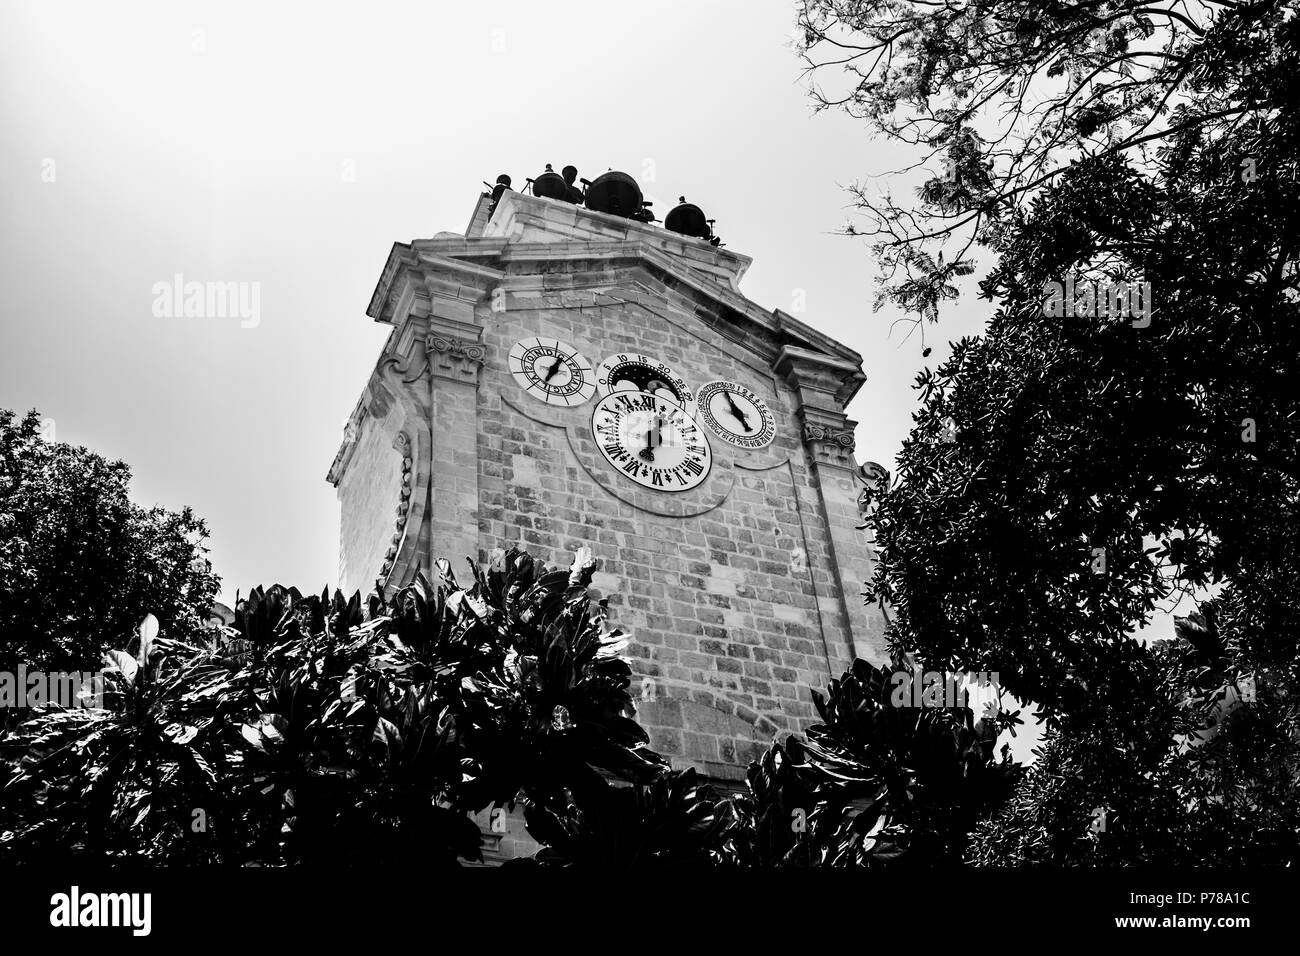 An old clock tower in black and white located in Valletta, Malta. - Stock Image